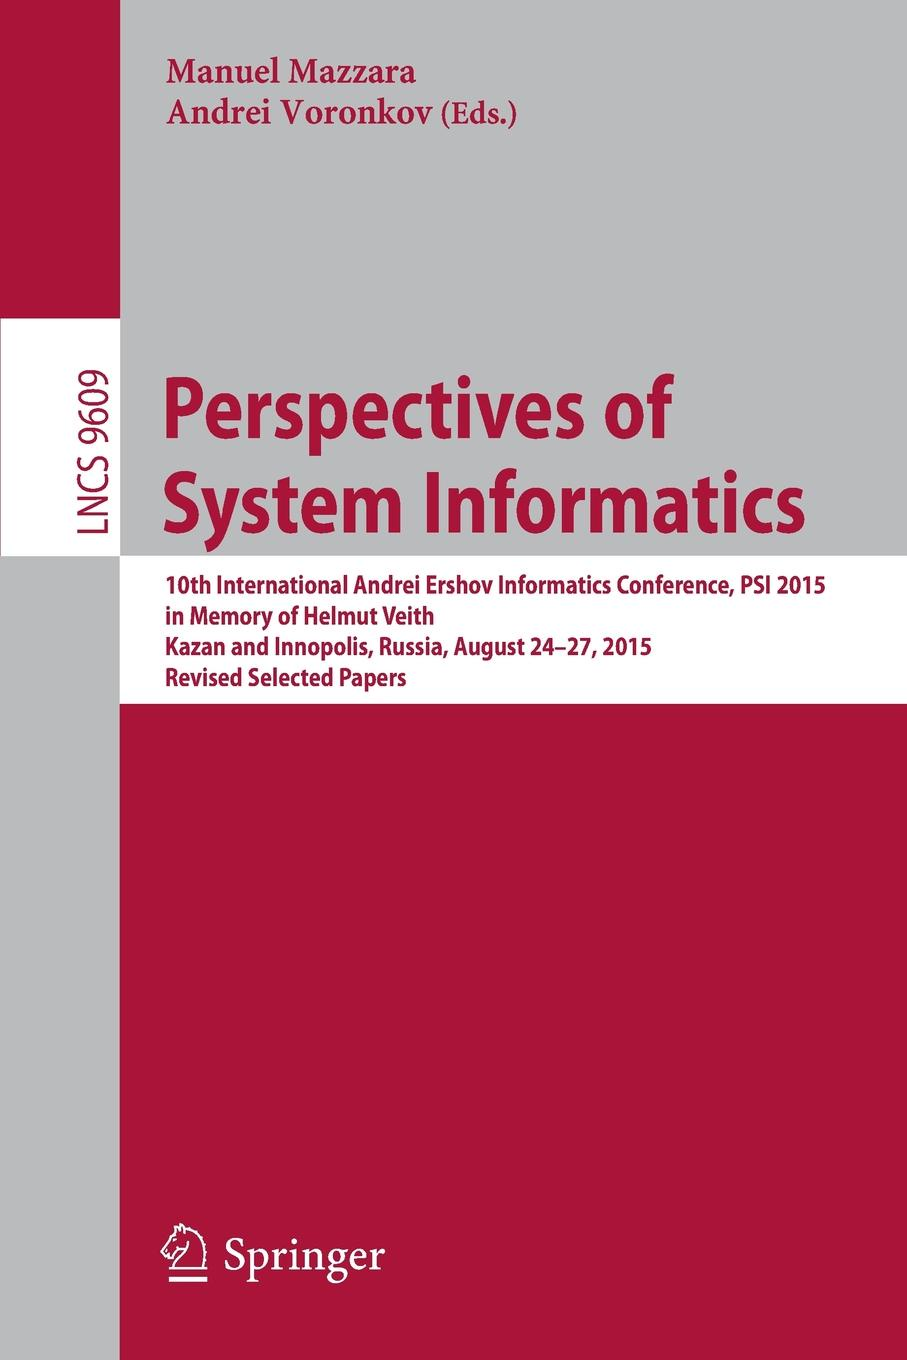 Perspectives of System Informatics. 10th International Andrei Ershov Informatics Conference, PSI 2015, in Memory of Helmut Veith, Kazan and Innopolis, Russia, August 24-27, 2015, Revised Selected Papers christian blum metaheuristics for string problems in bio informatics